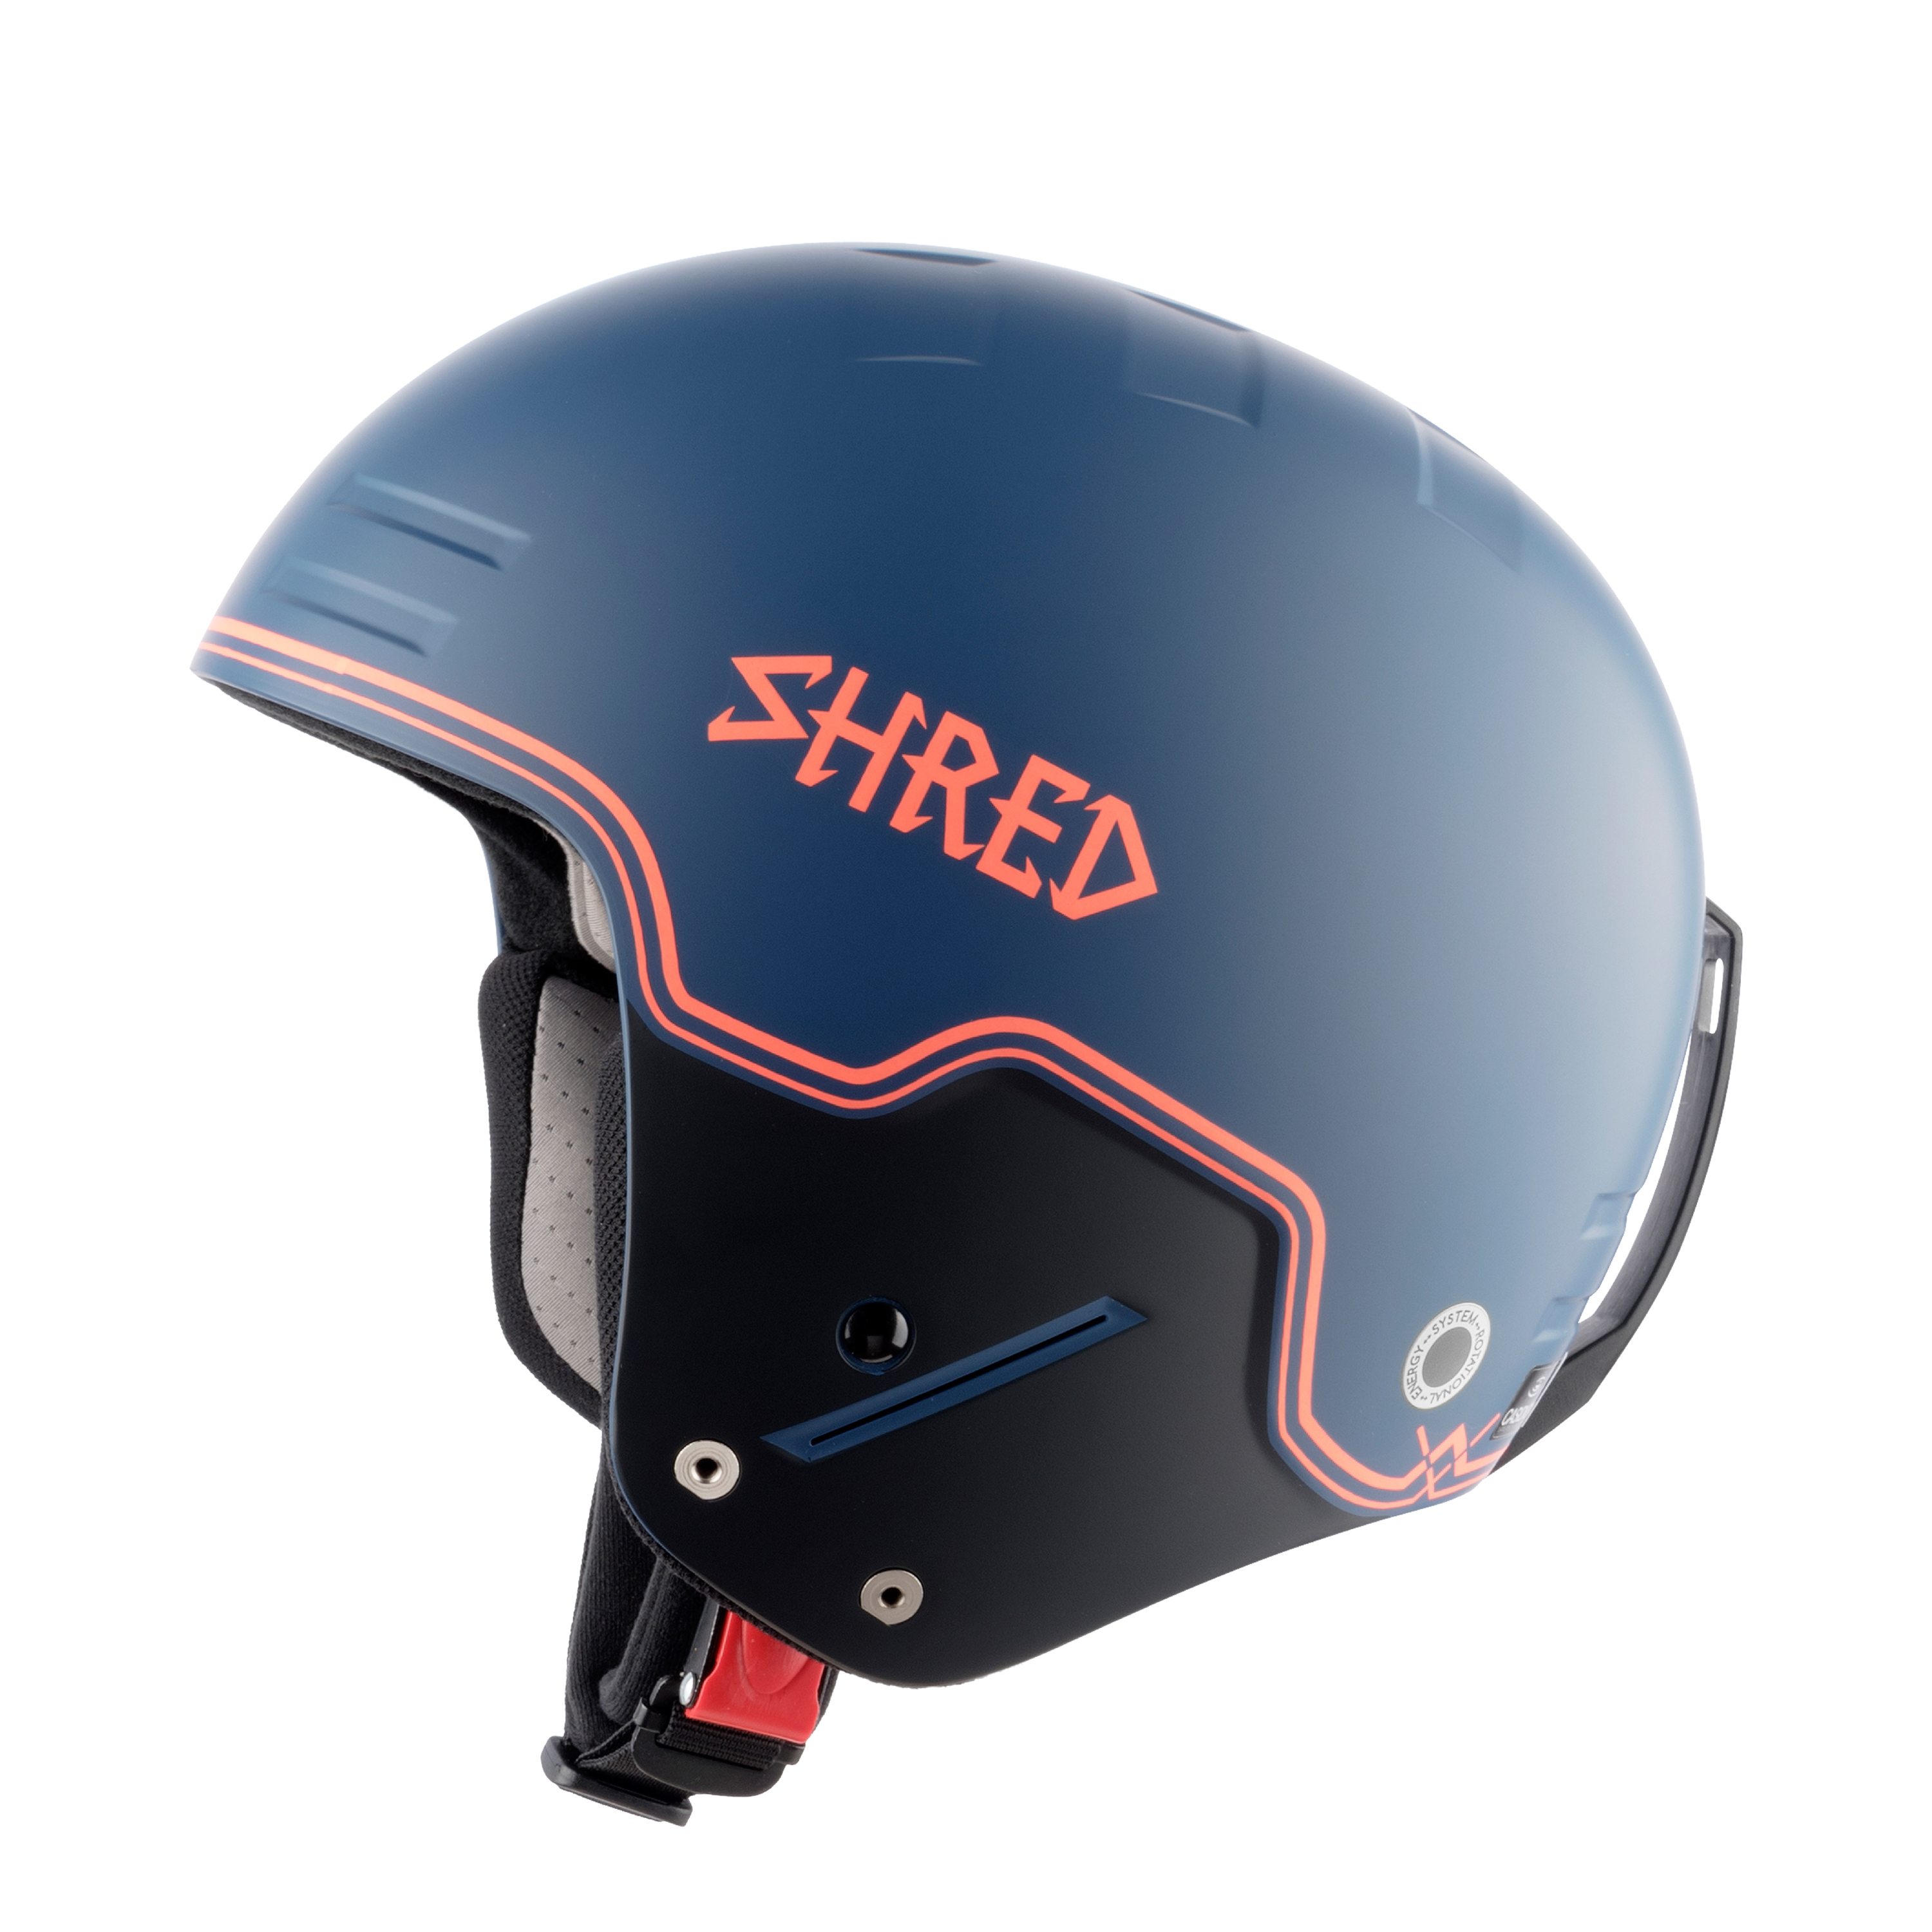 SHRED CASCO BASHER ULTIMATE BIGSHOW NAVY/RUST - 2019